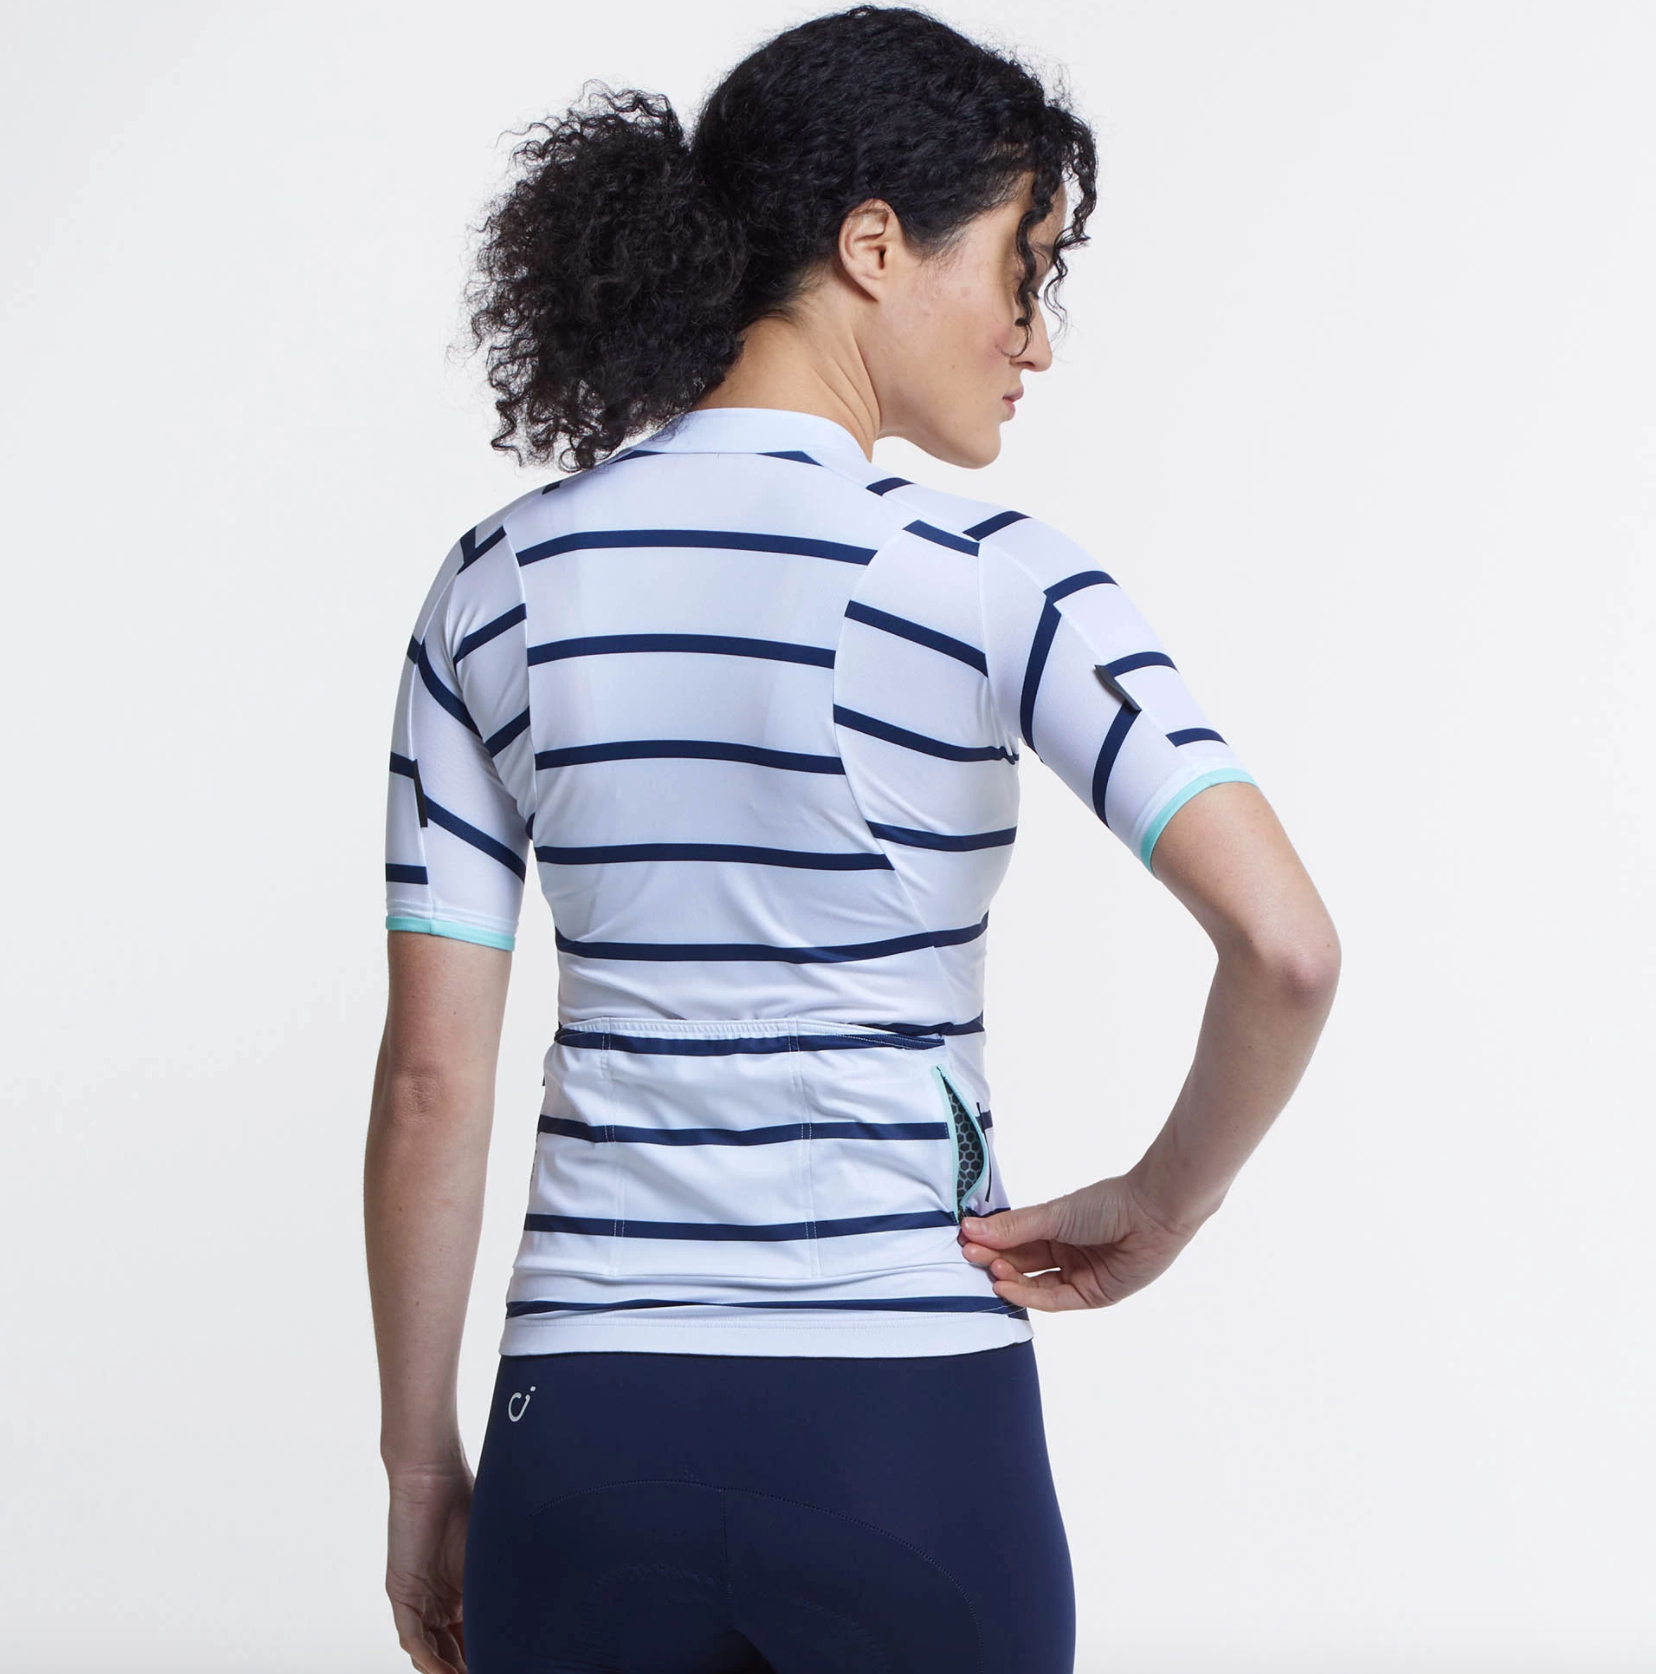 VELOCIO WOMENS BRETON JERSEY White Navy - CHAINSMITH BIKE SHOP